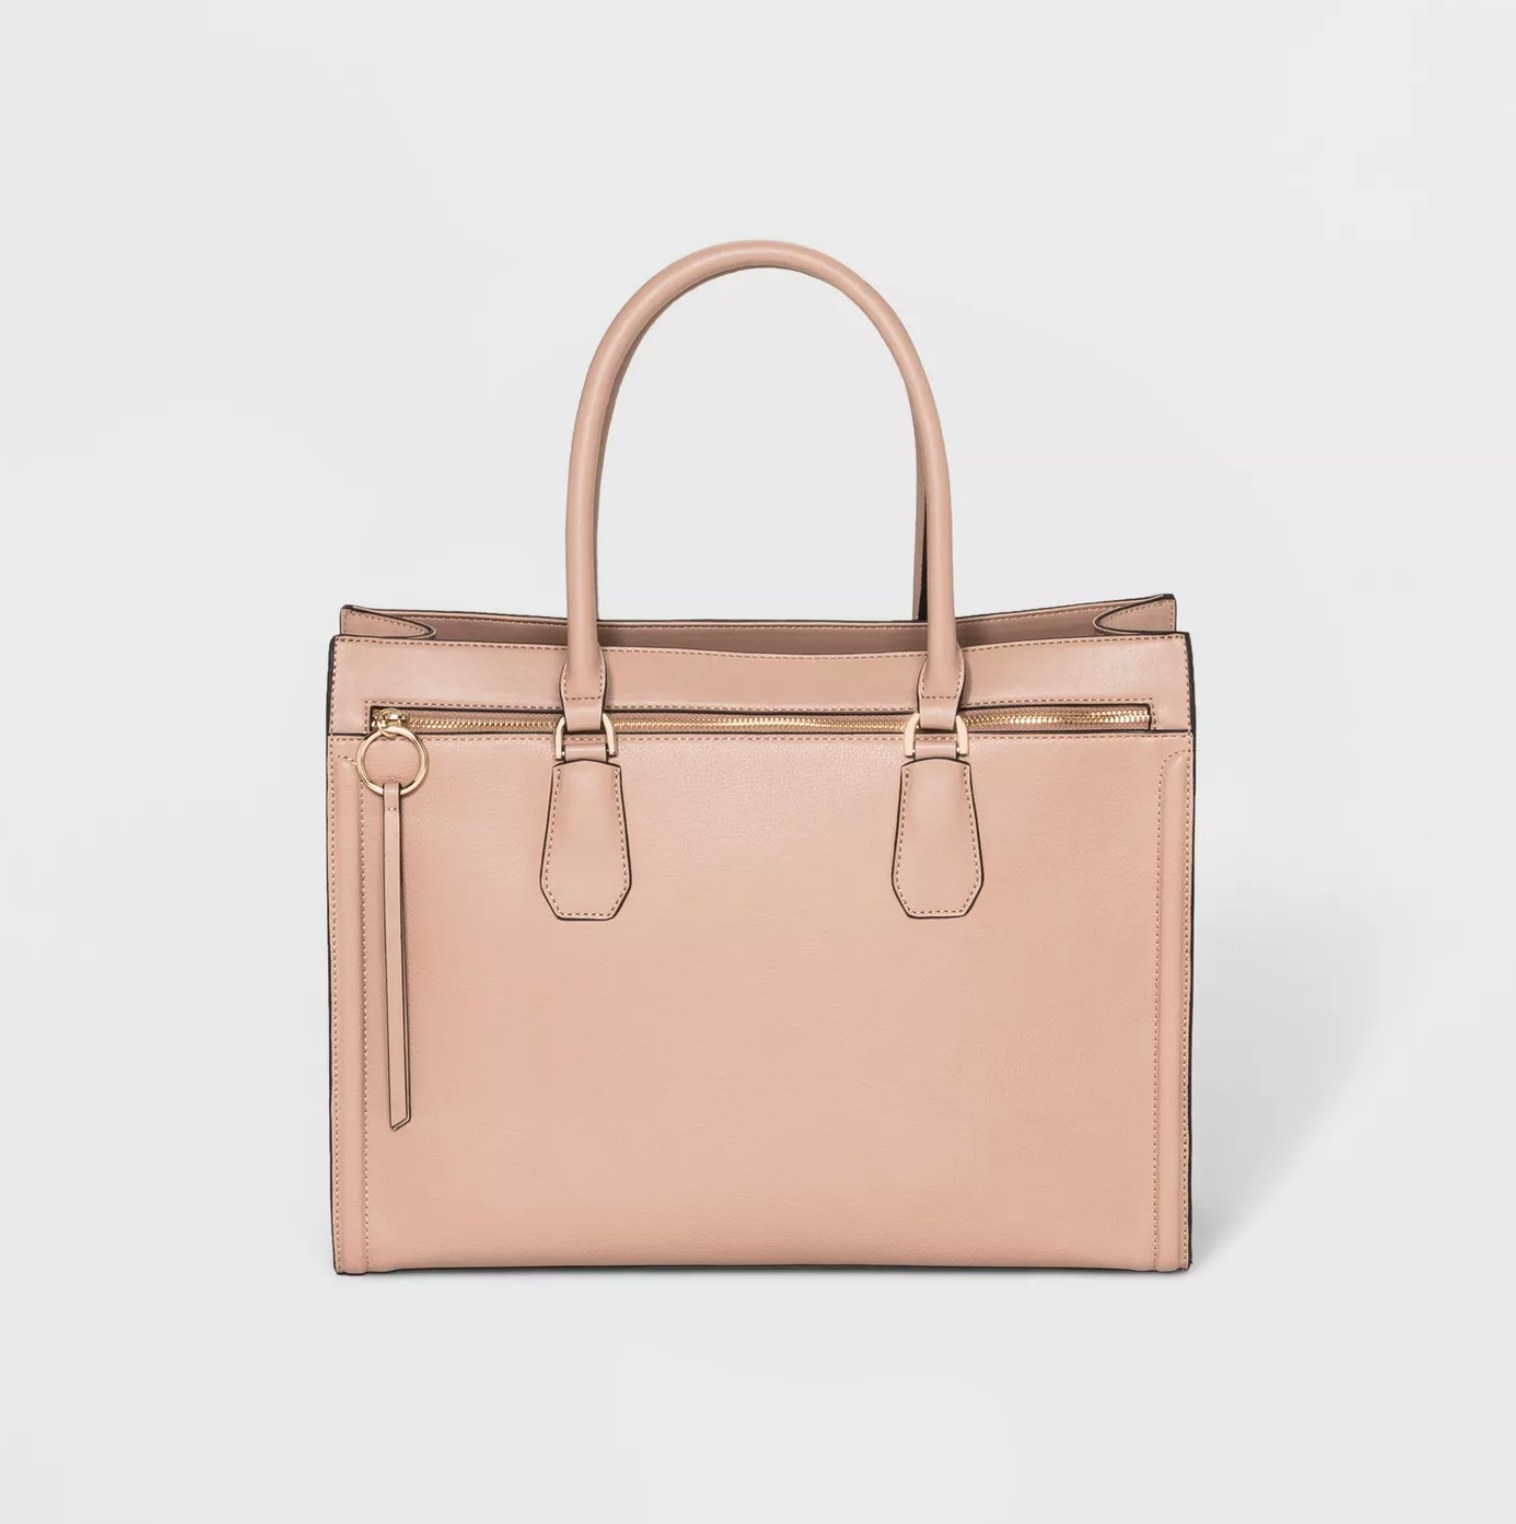 The bag in brown